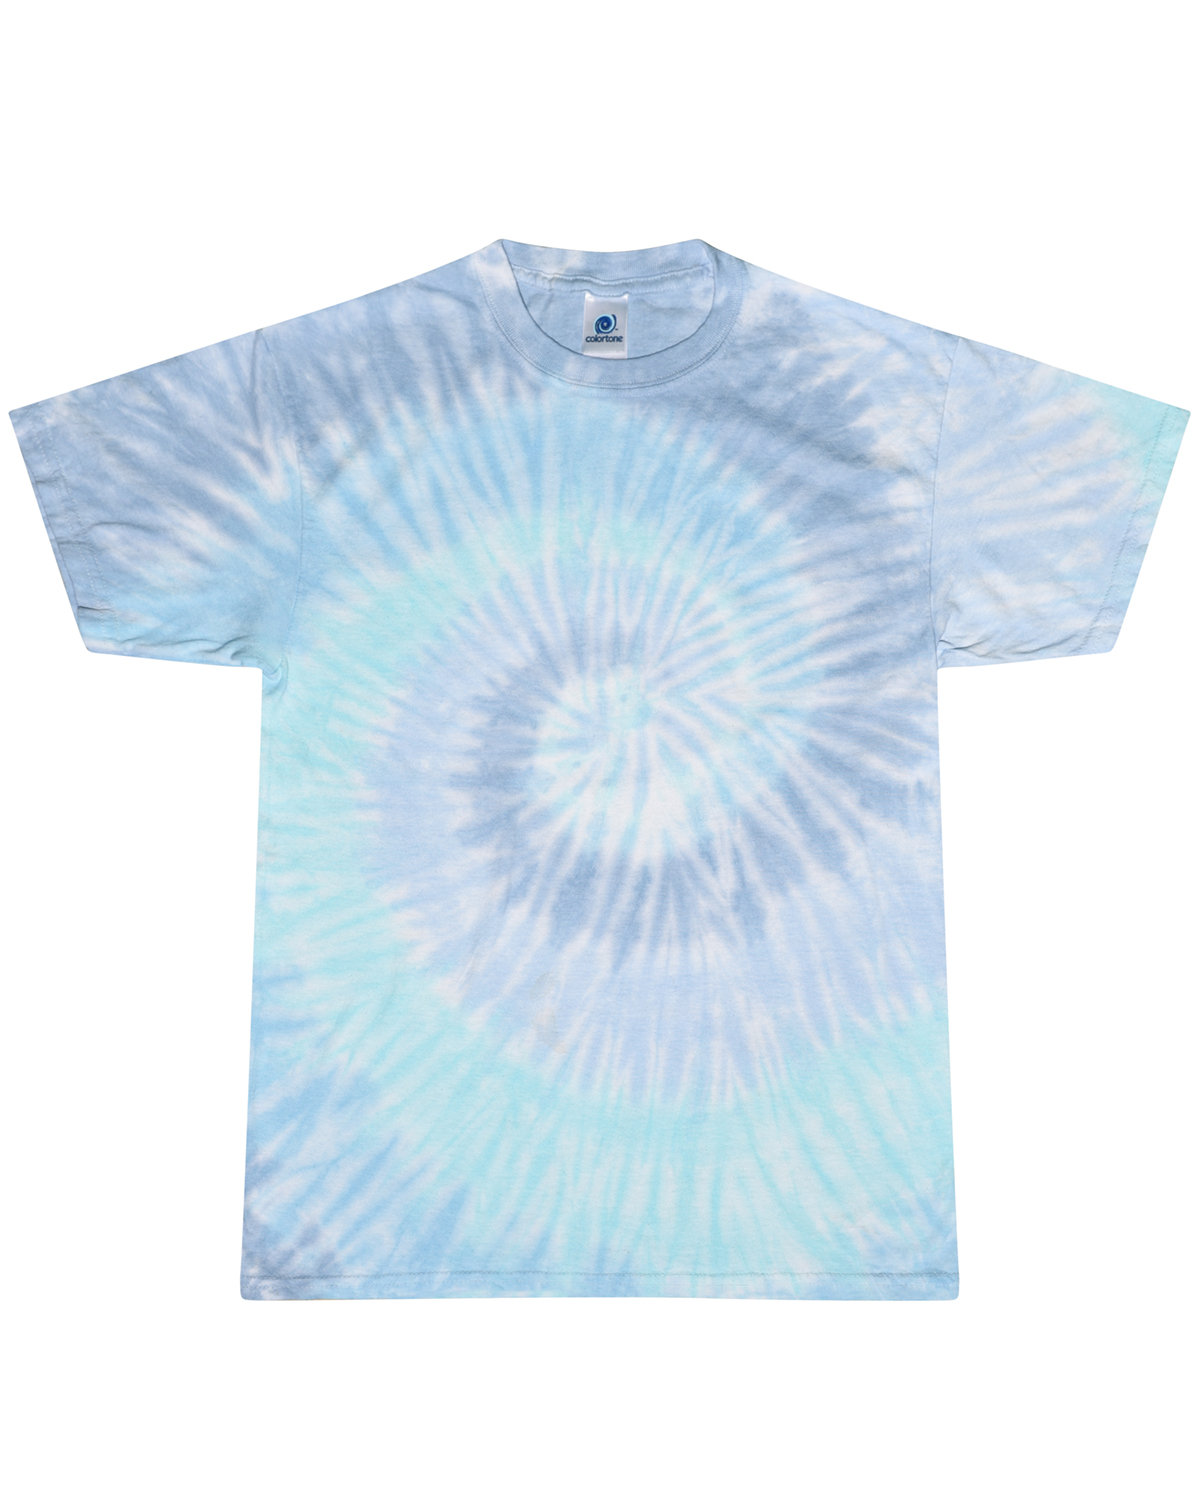 Tie-Dye Adult 5.4 oz., 100% Cotton T-Shirt LAGOON